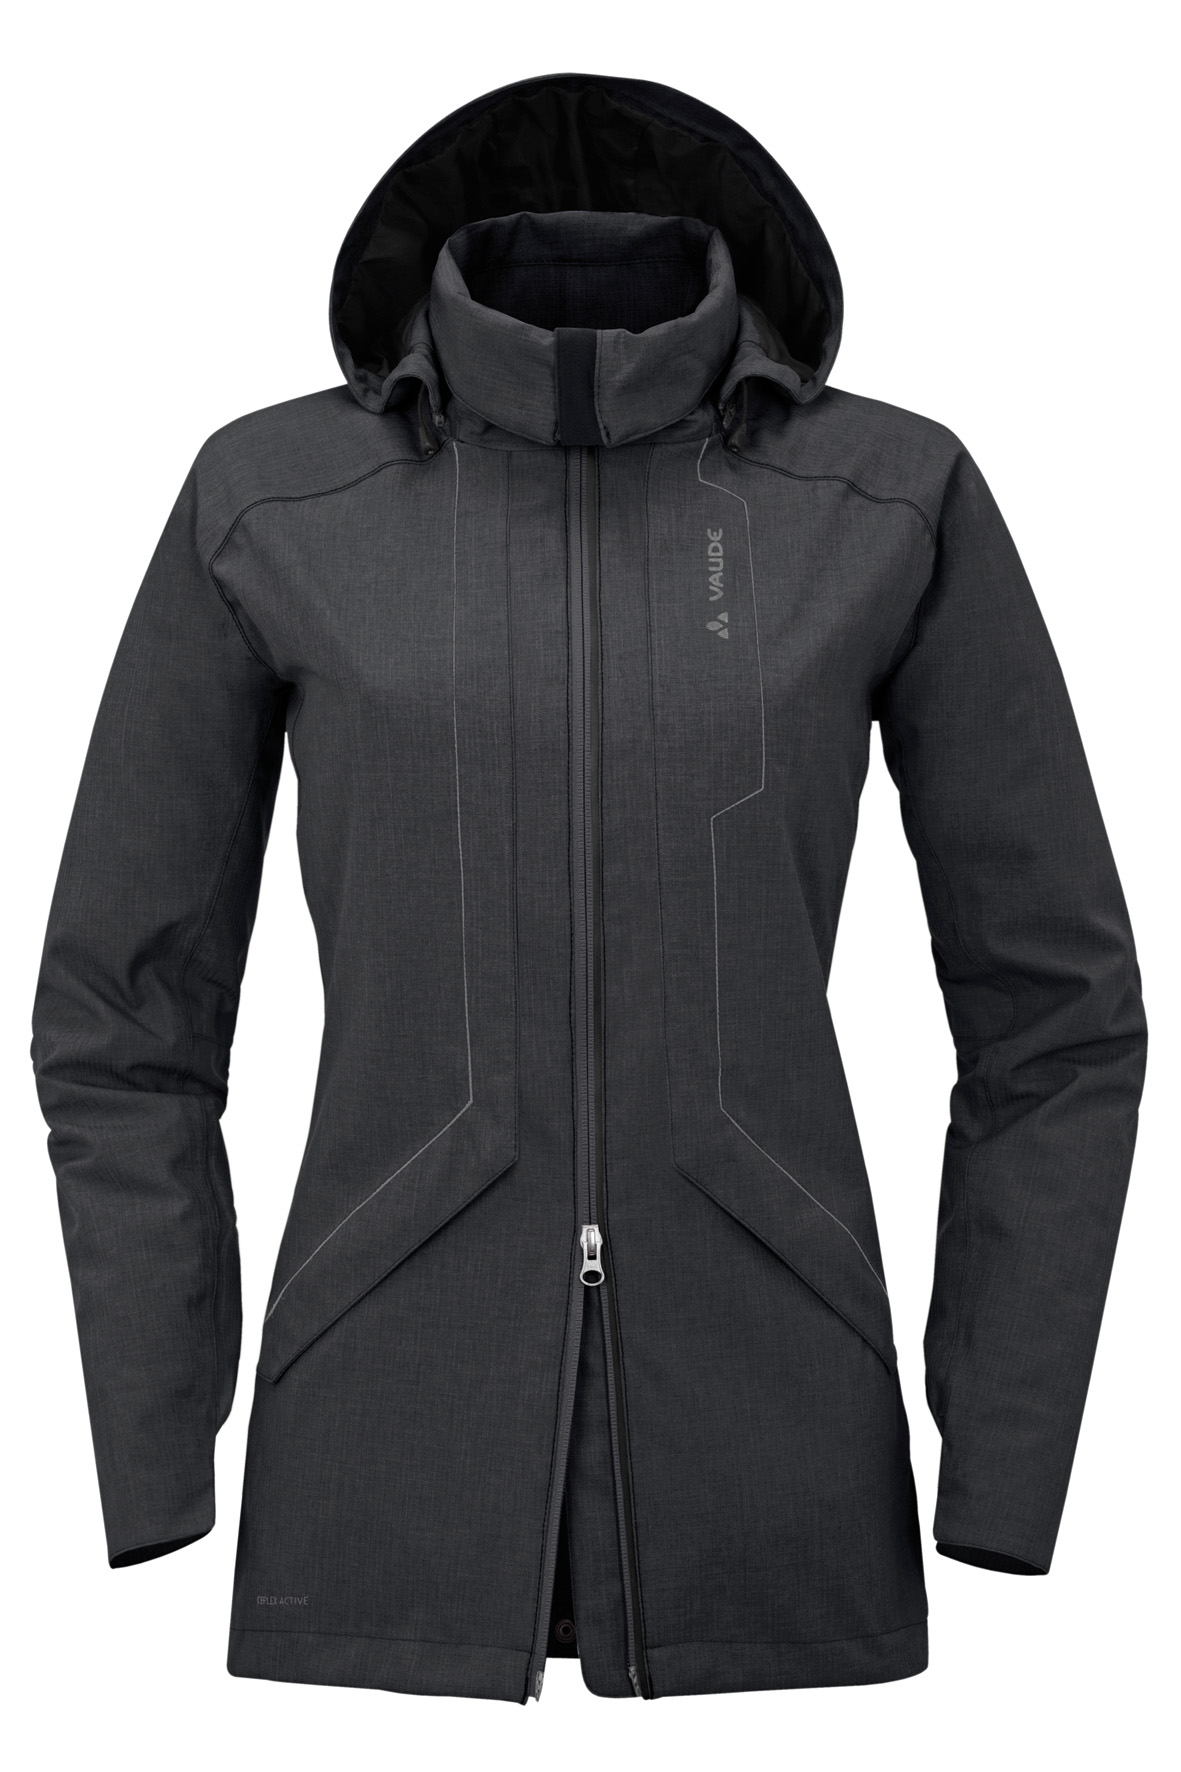 Women´s Homy Padded Jacket black Größe 42 - schneider-sports